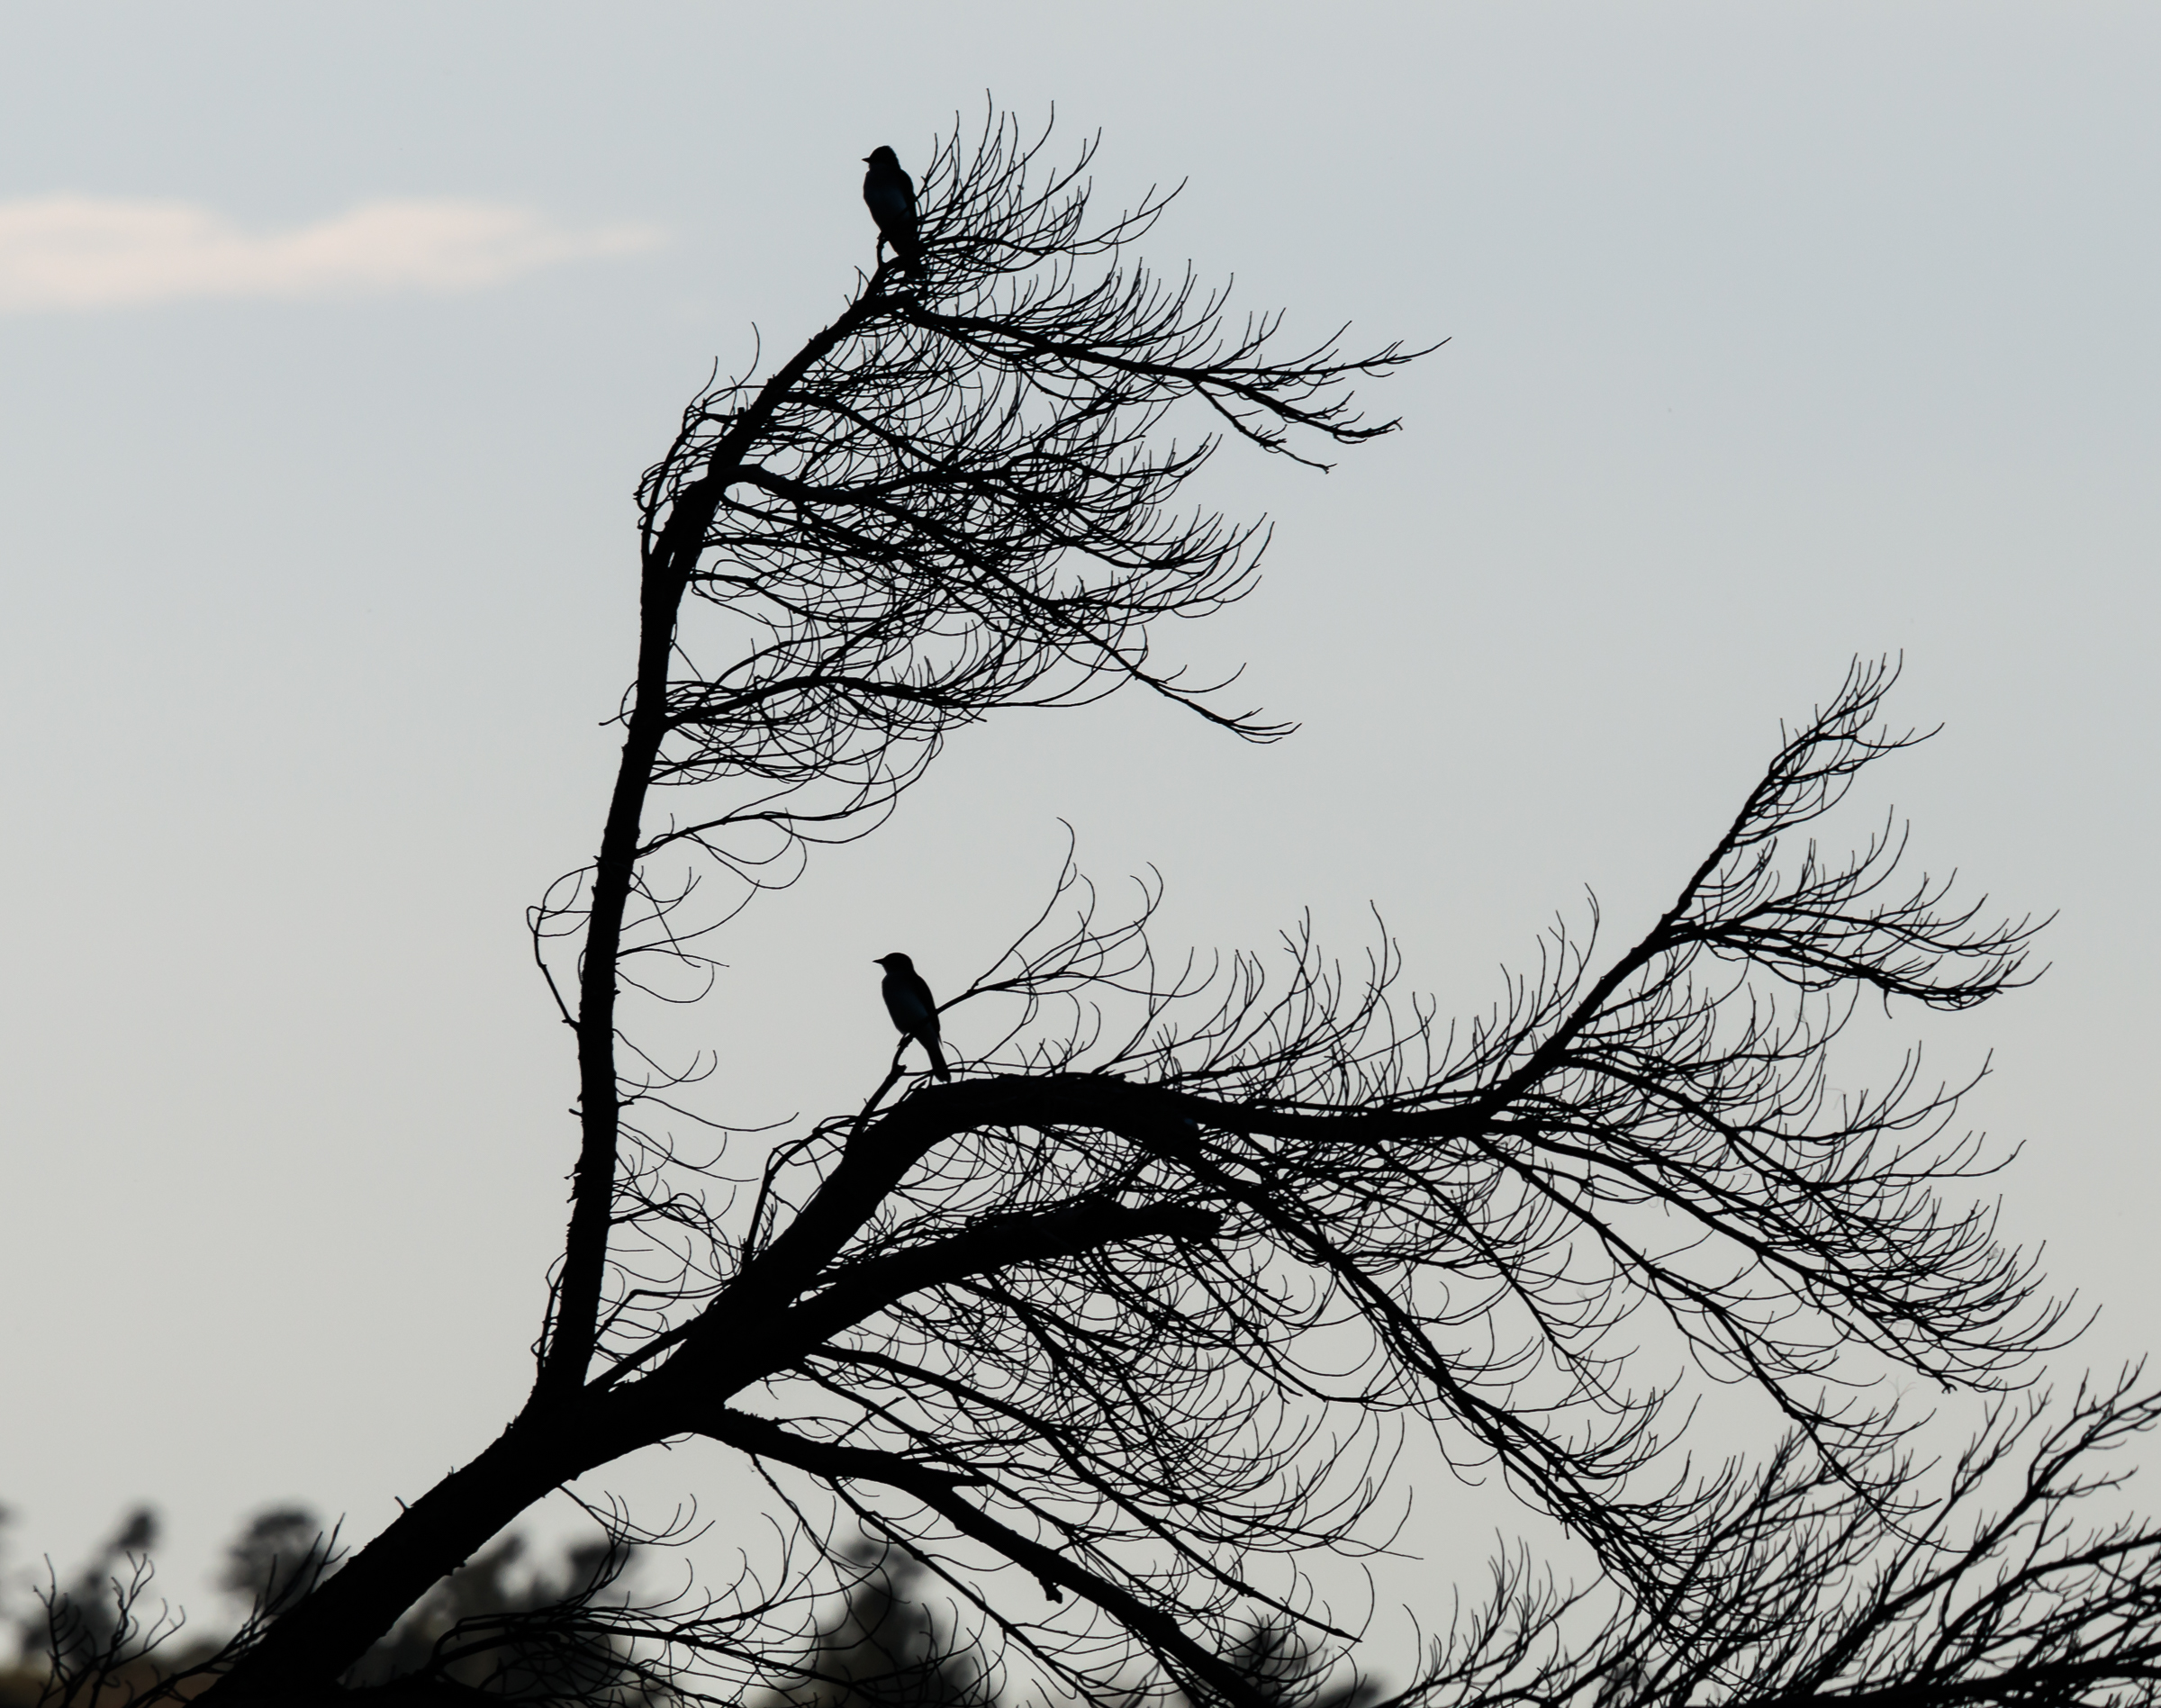 Birds Silhouetted on Dead Tree